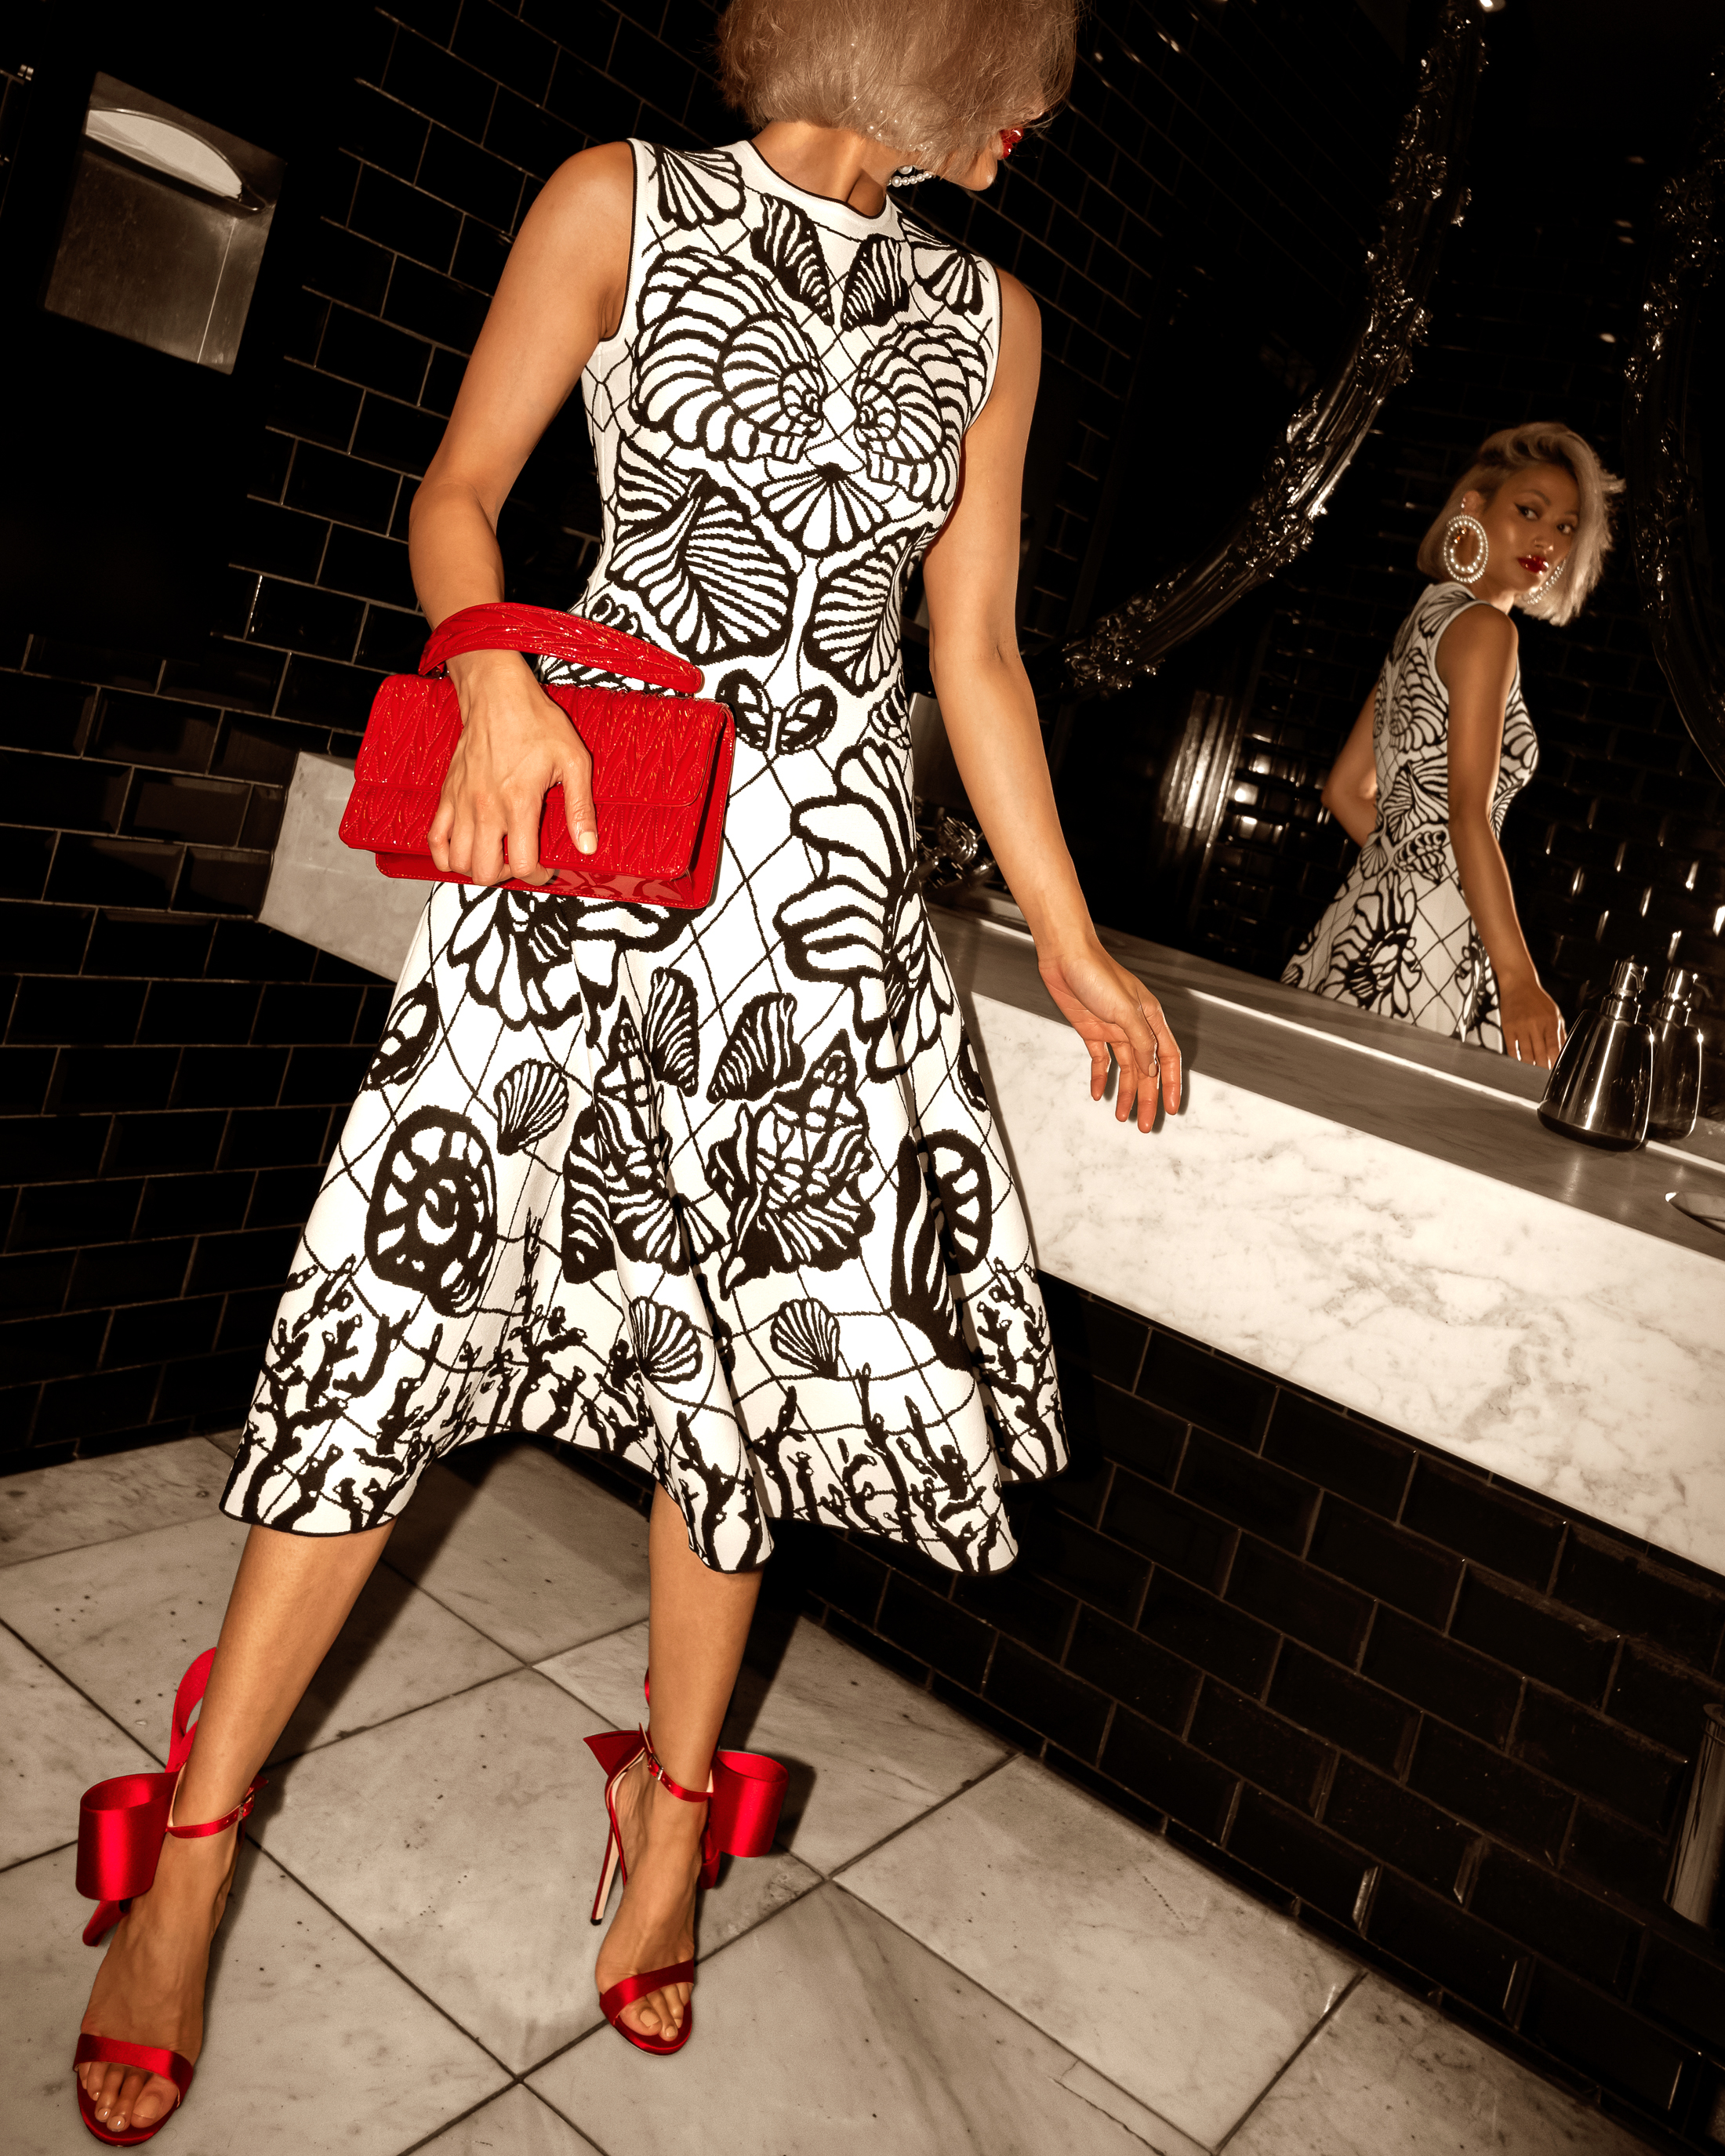 Alexander McQueen Designer Dress Red Bag Heels Party